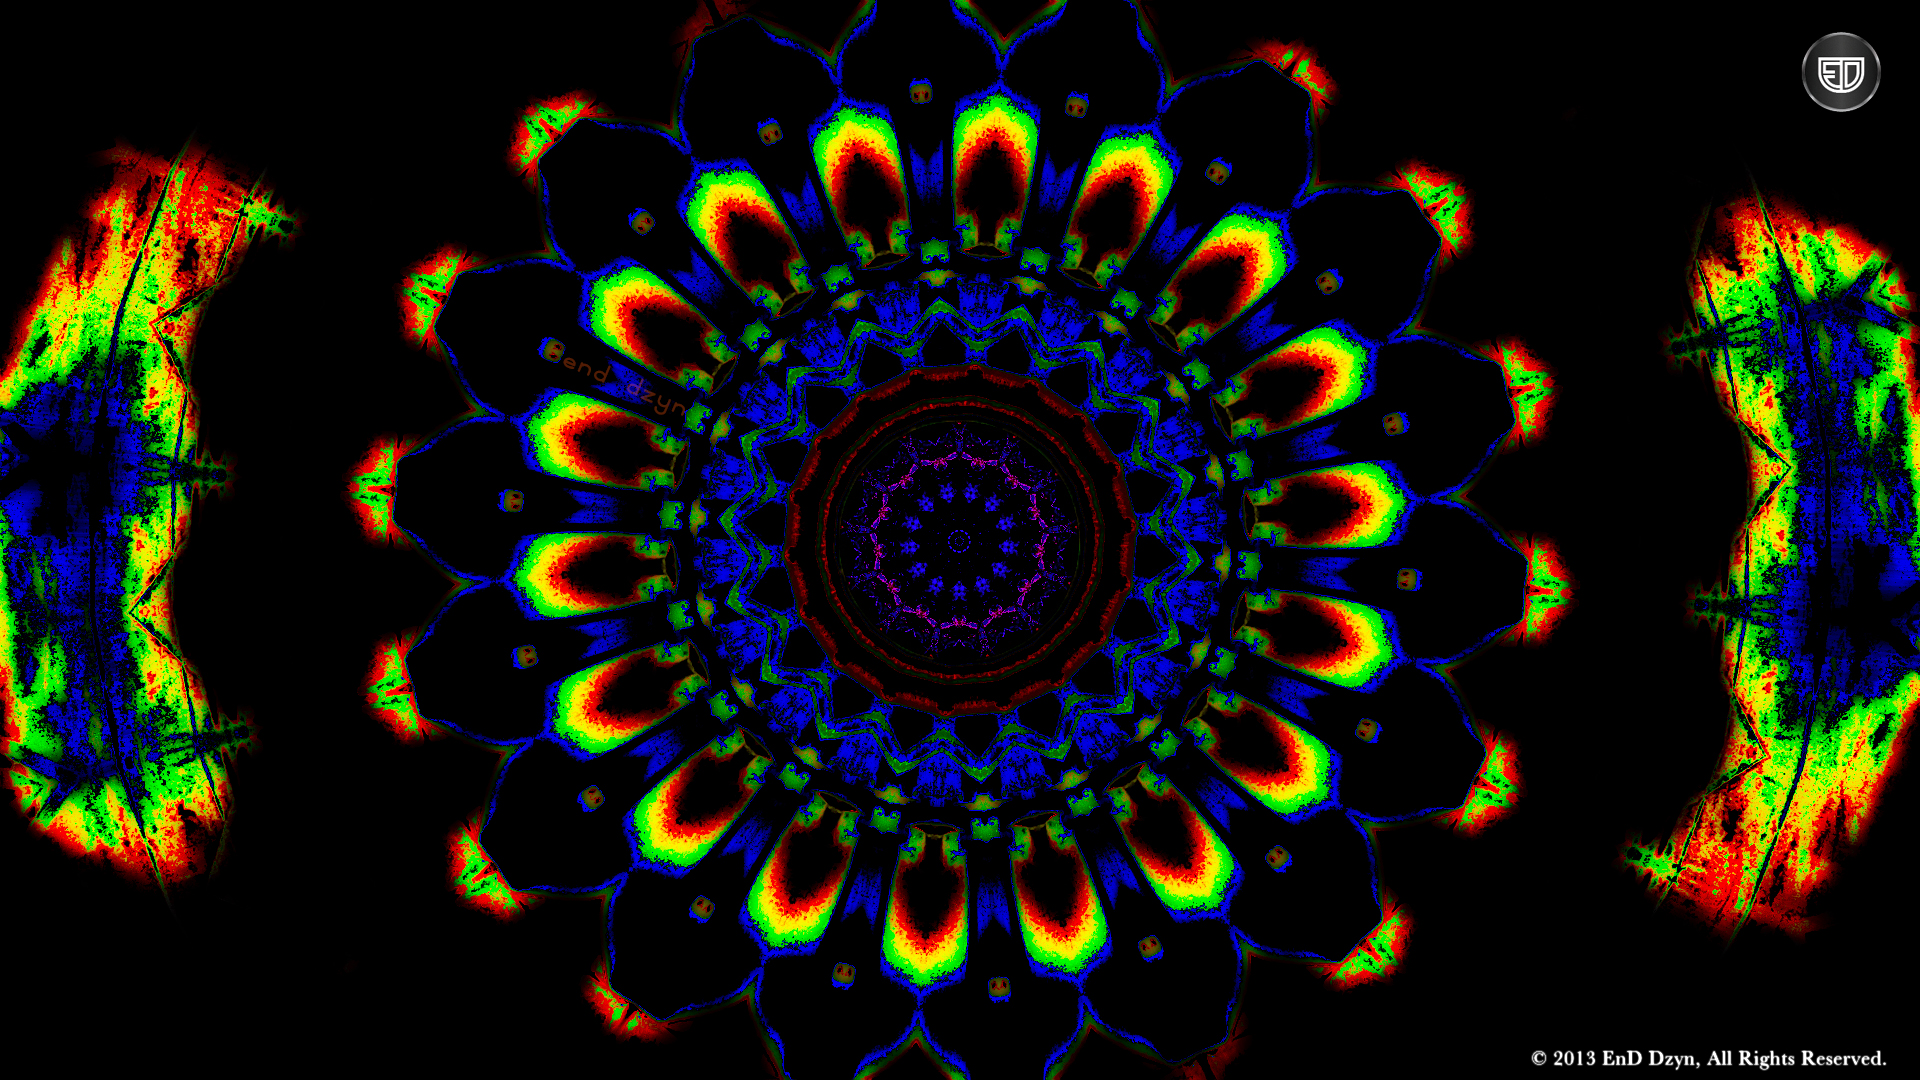 Psychedelic HD Background Wallpaper Trippy Colorful 3D 1920x1080